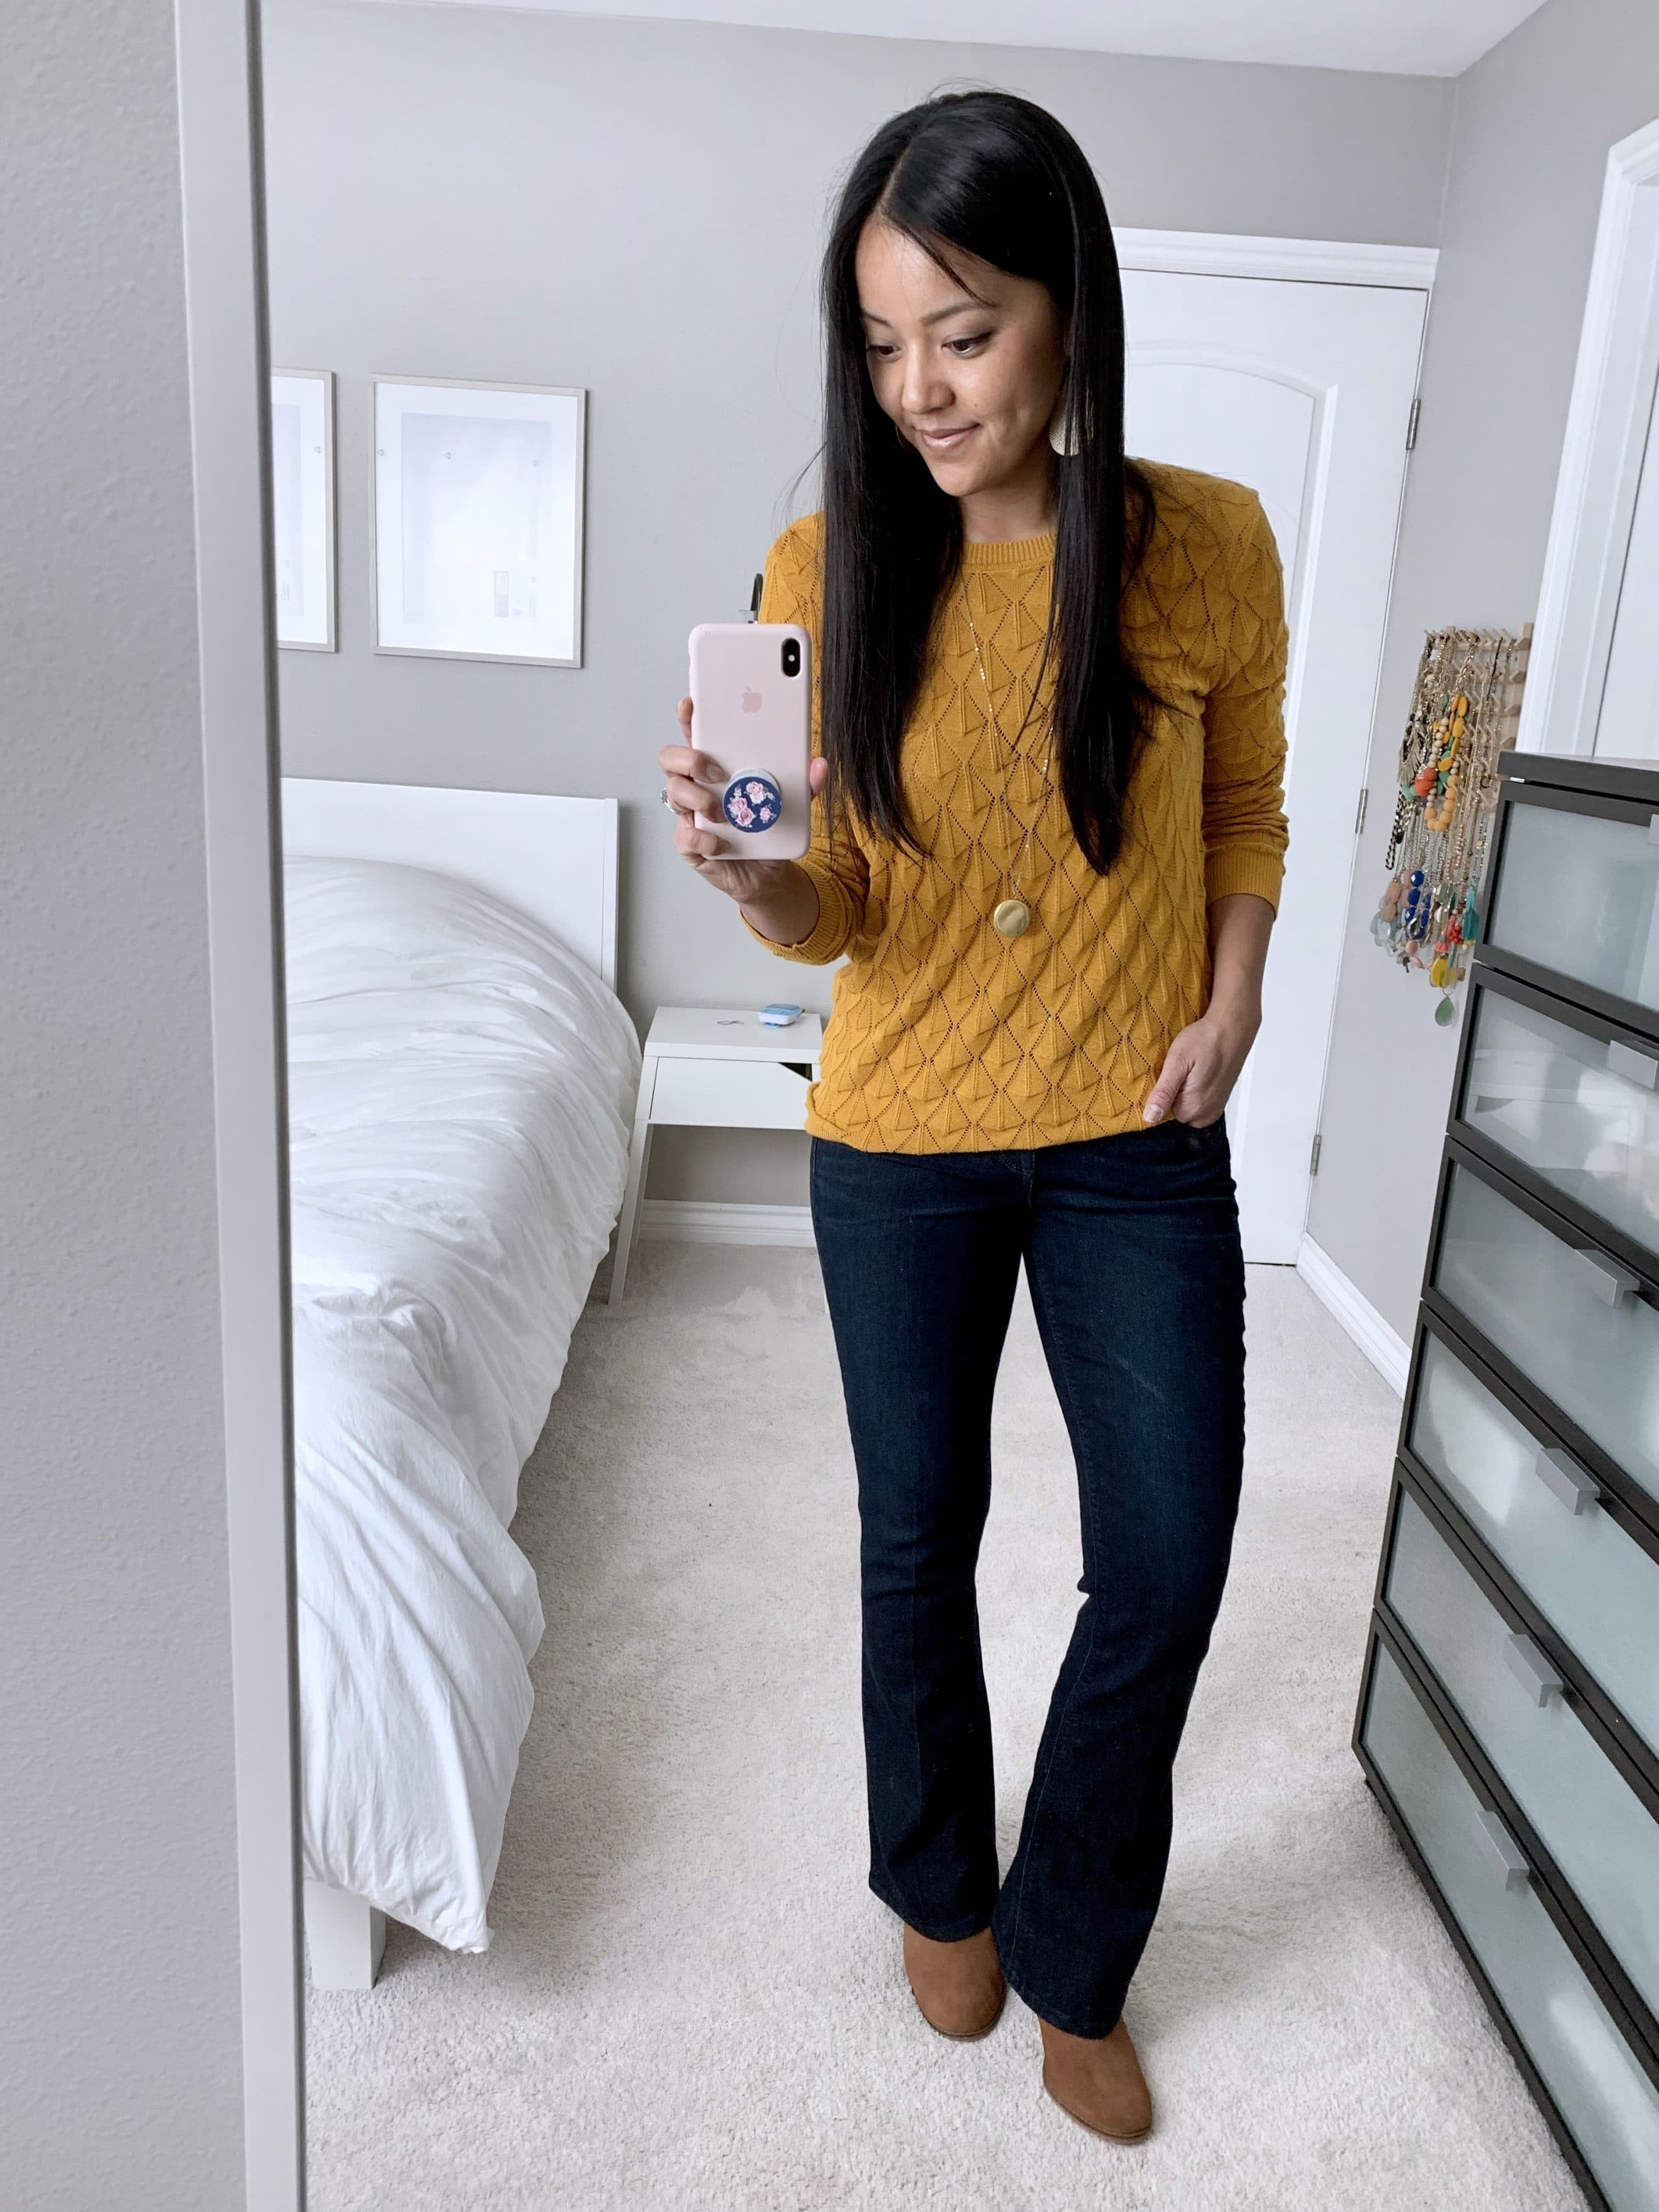 bootcut jeans + yellow sweater + tan wedge booties